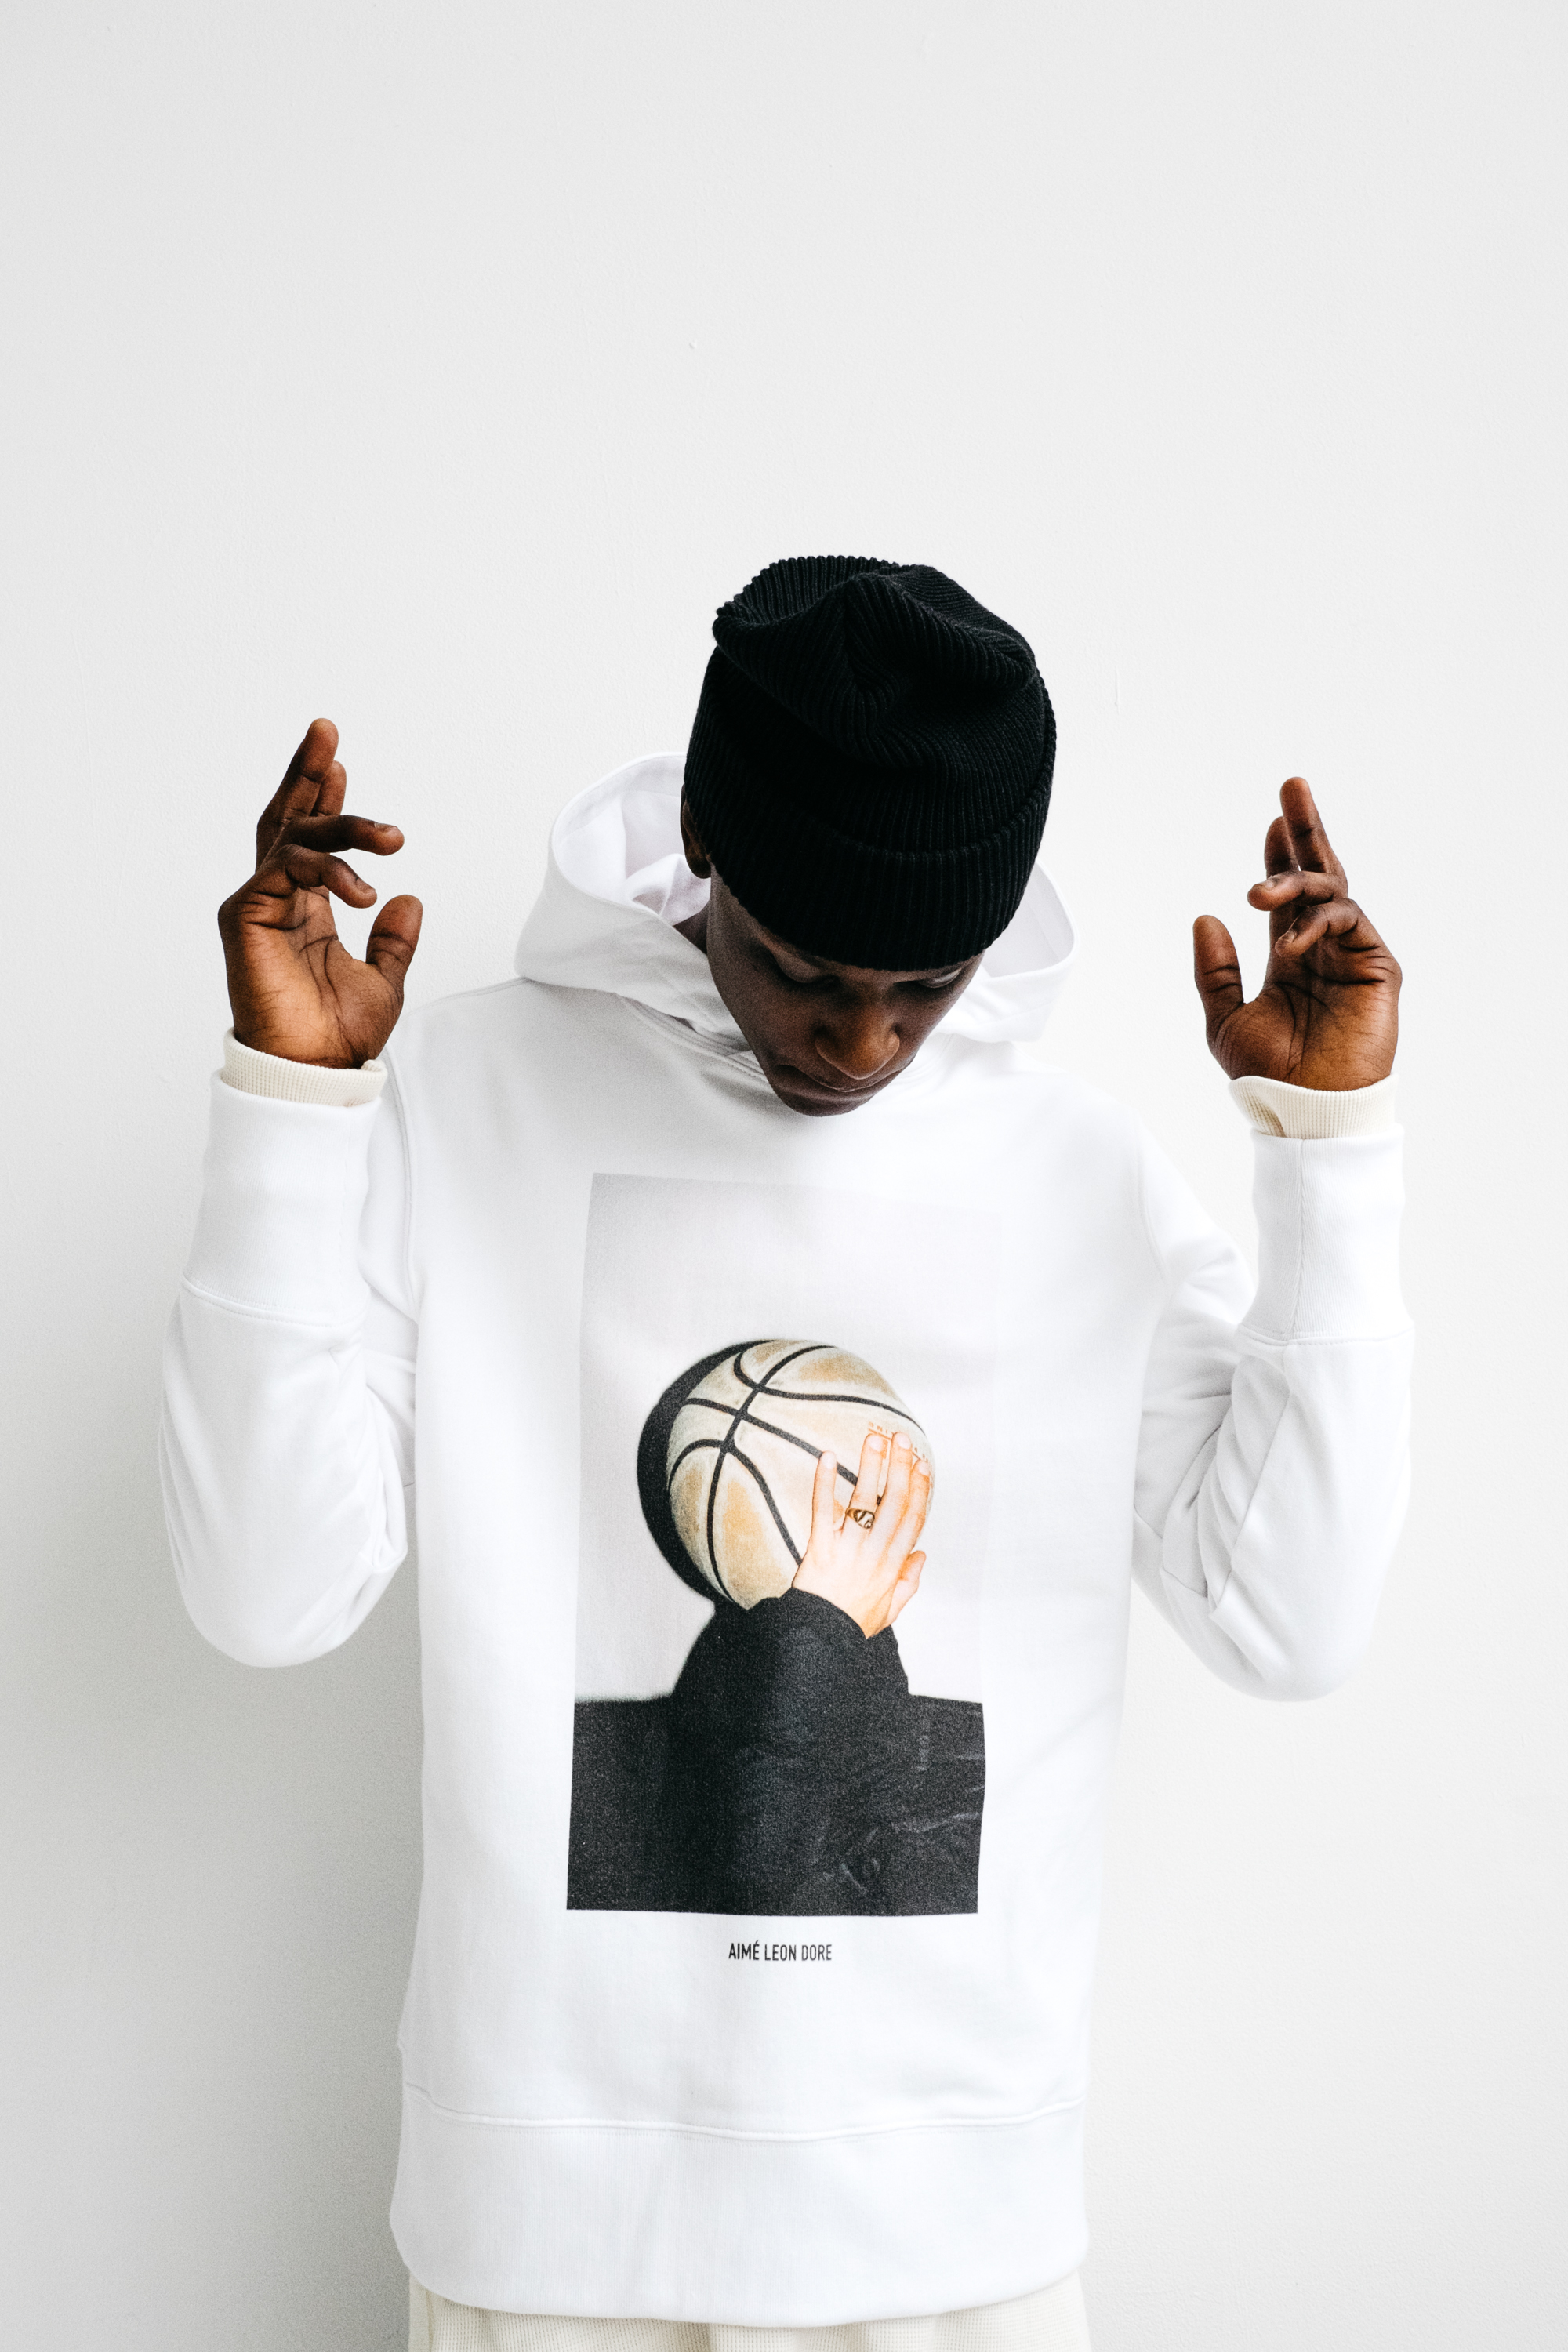 Aimé Leon Dore   'In The Pocket' Capsule Collection